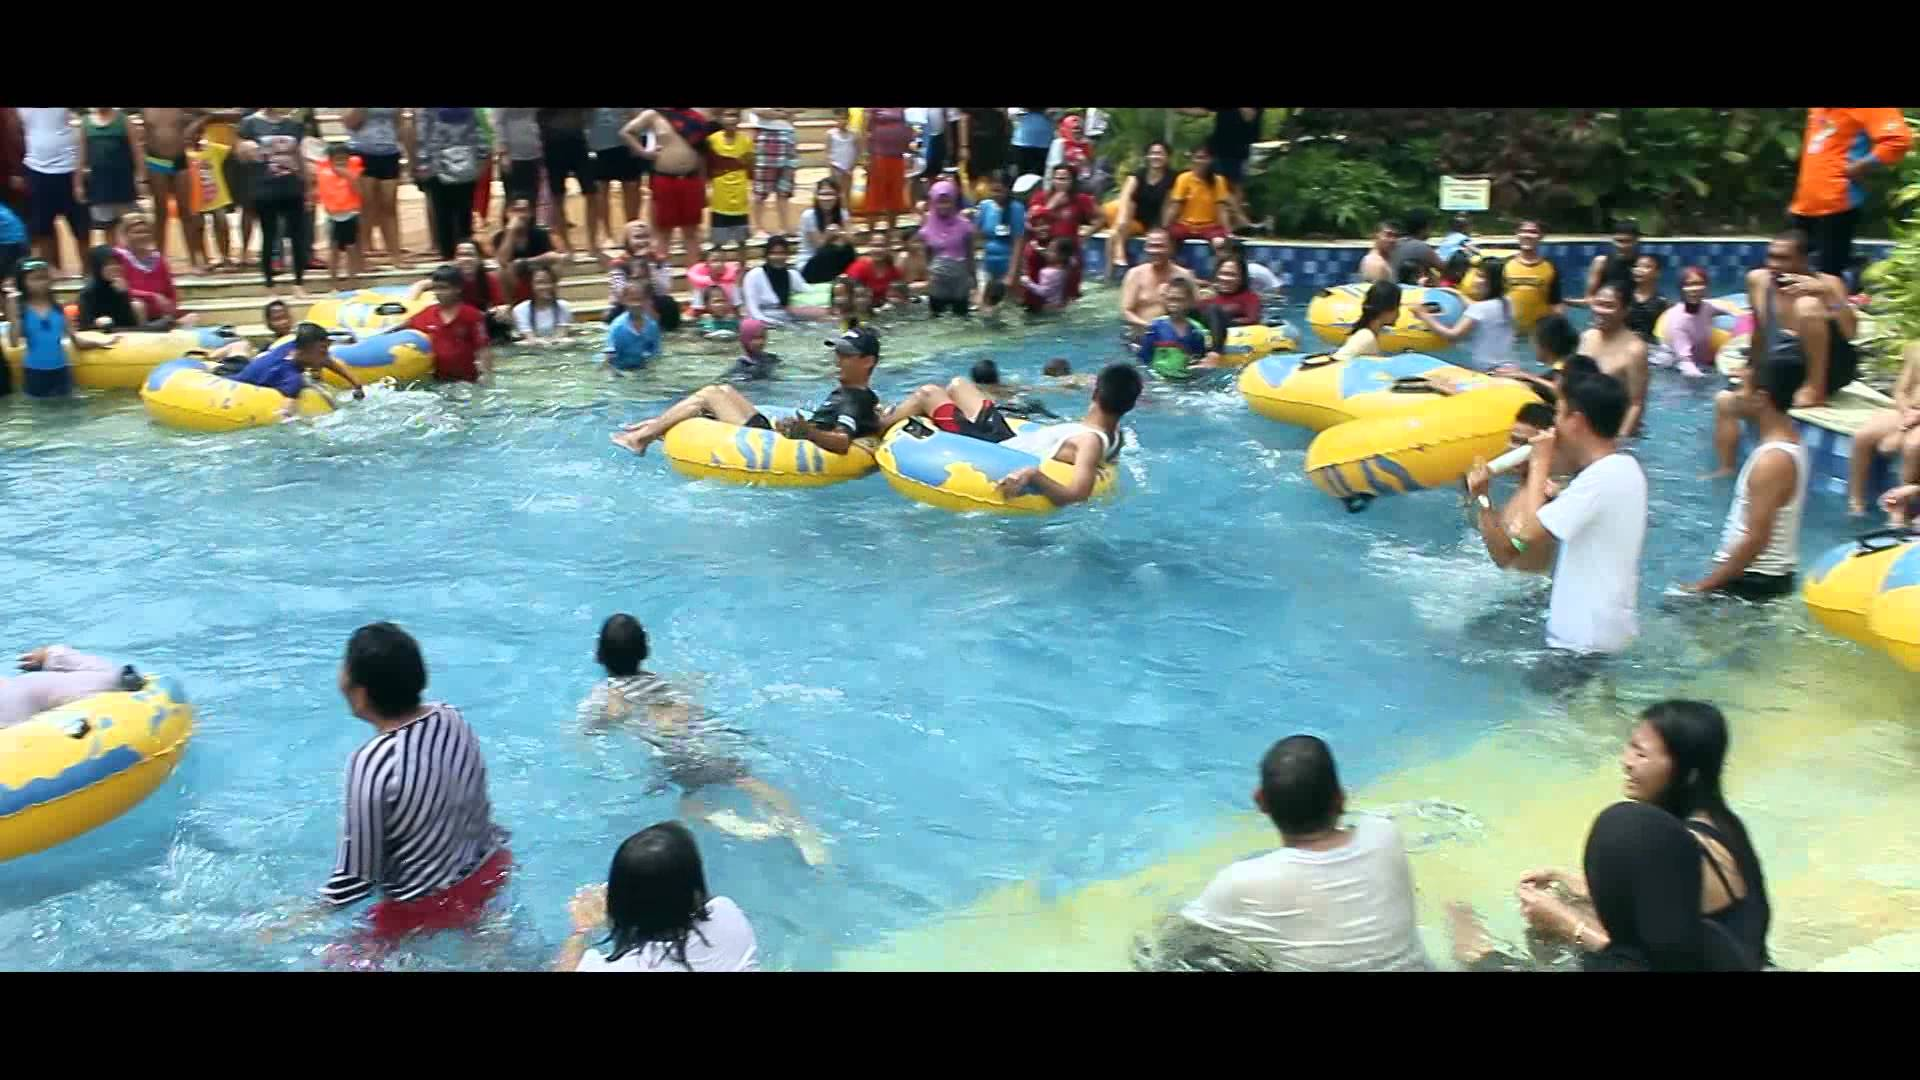 Amanzi Waterpark Palembang Freezyfun 24des 4jan Youtube Taman Air Citra